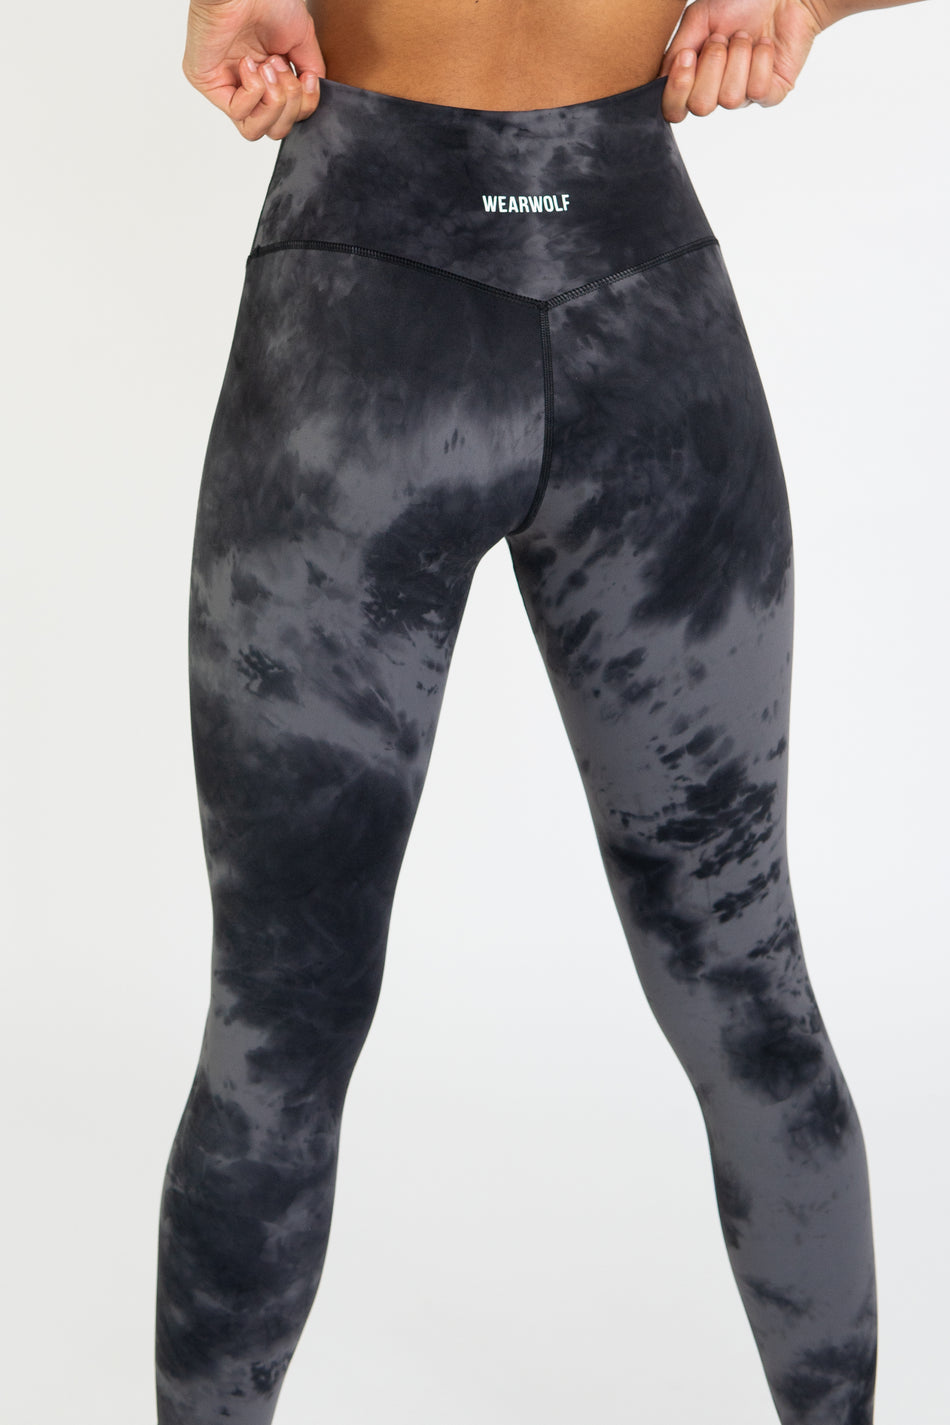 TieDye Leggings - Black/Silver - WearWolf Clothing UK